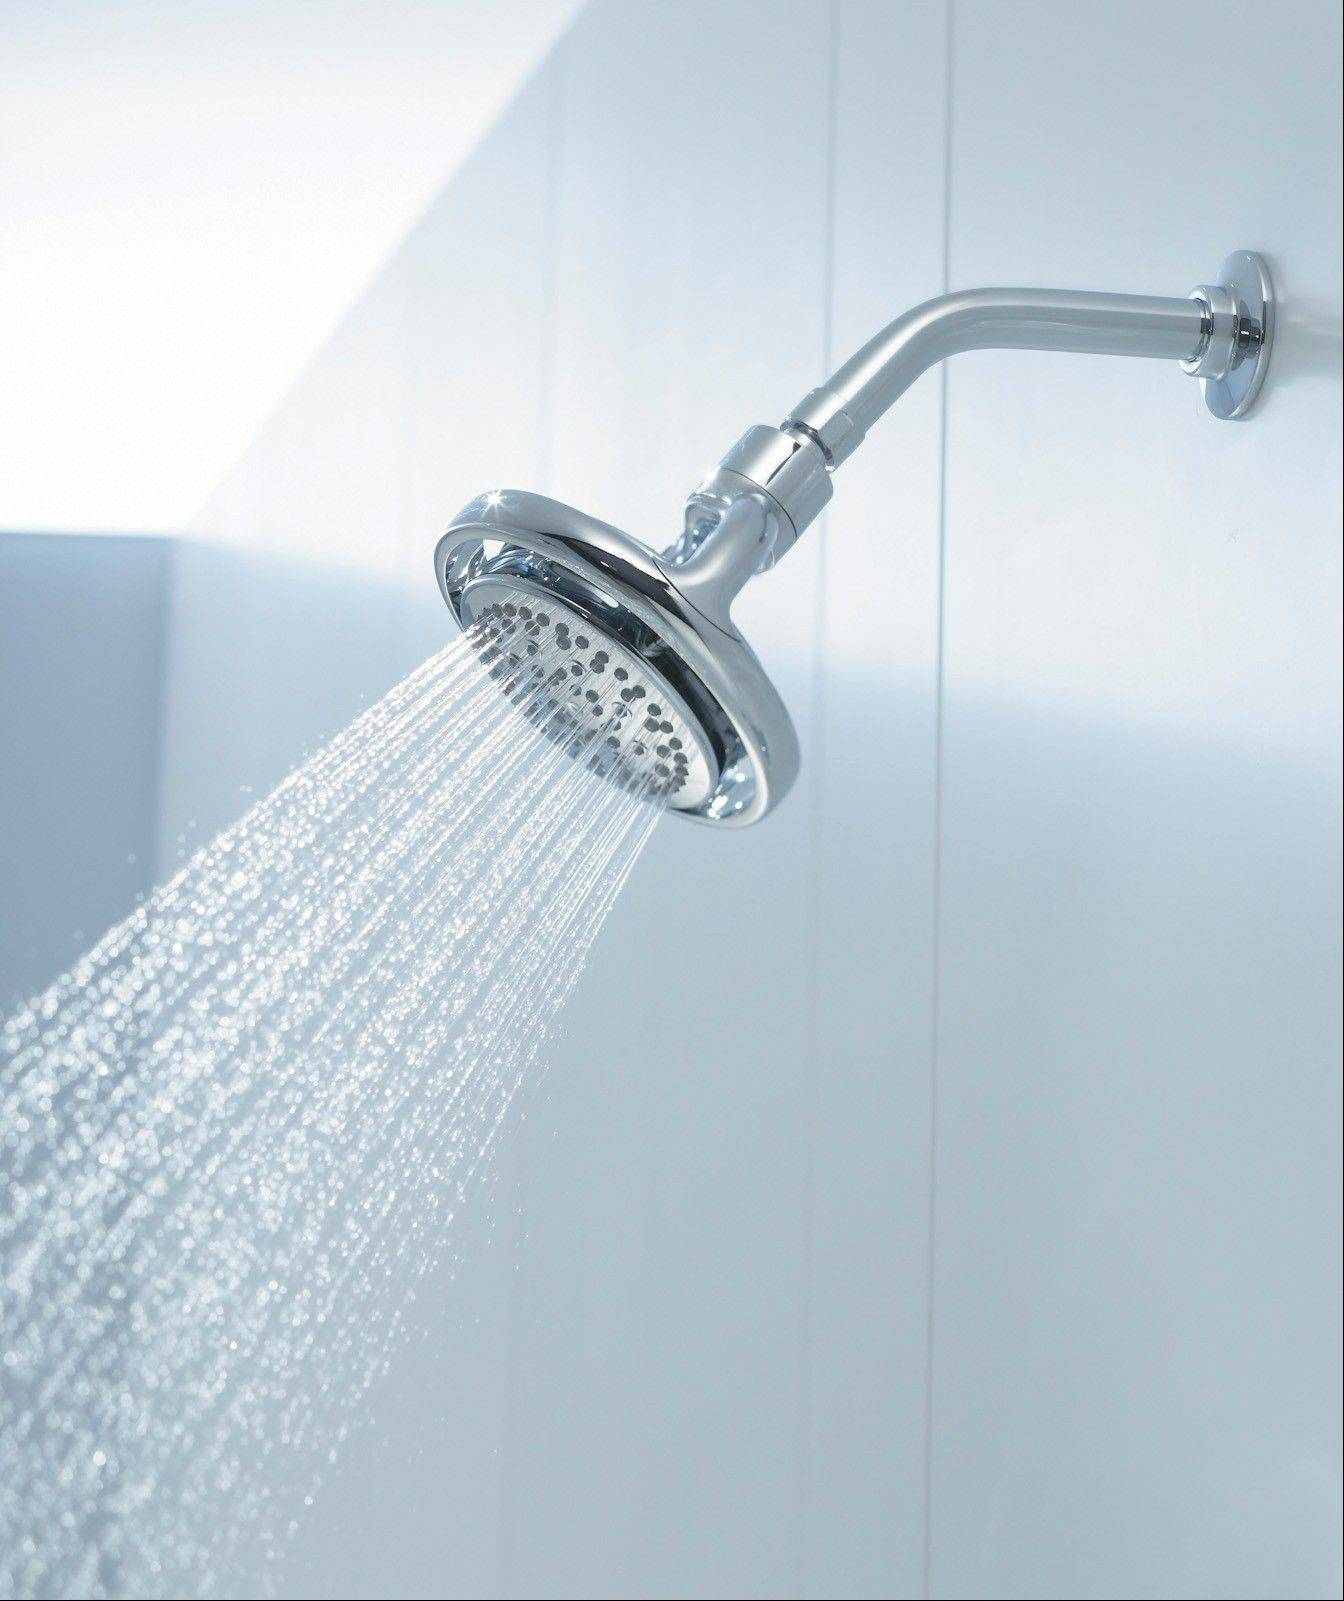 A new showerhead can change the entire look and feel of your tub and shower area.